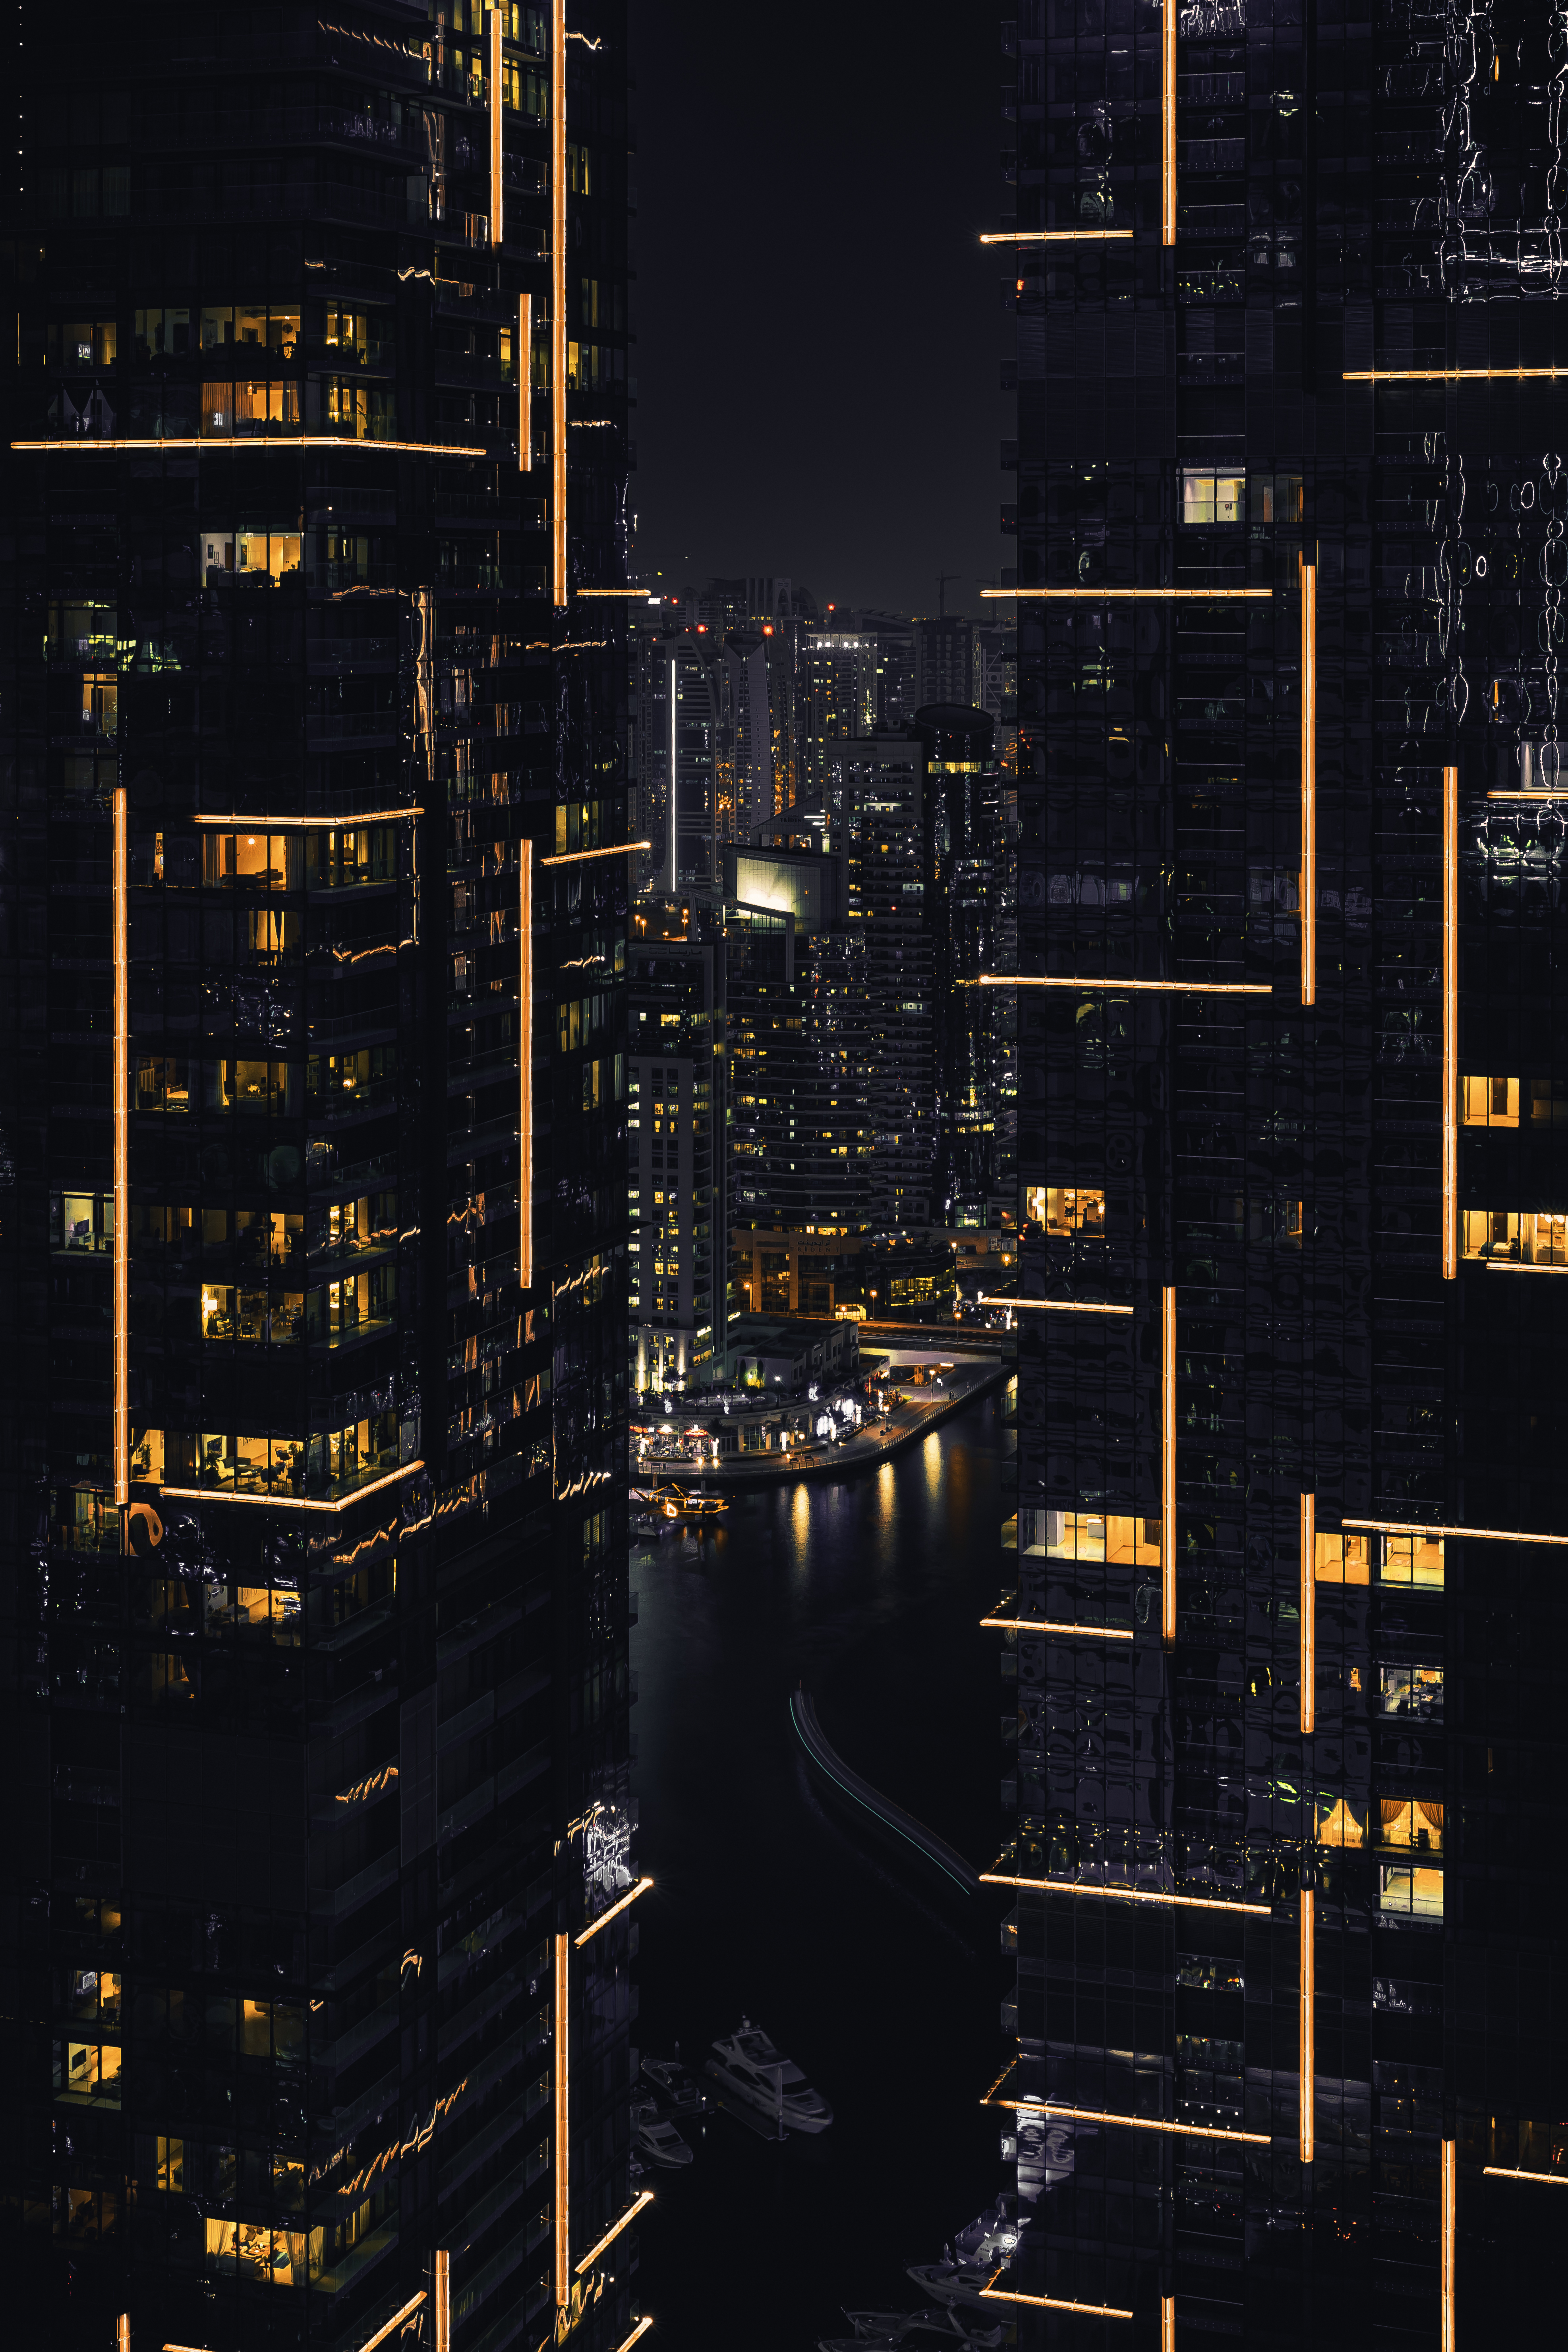 Photo of Buildings during Nighttime